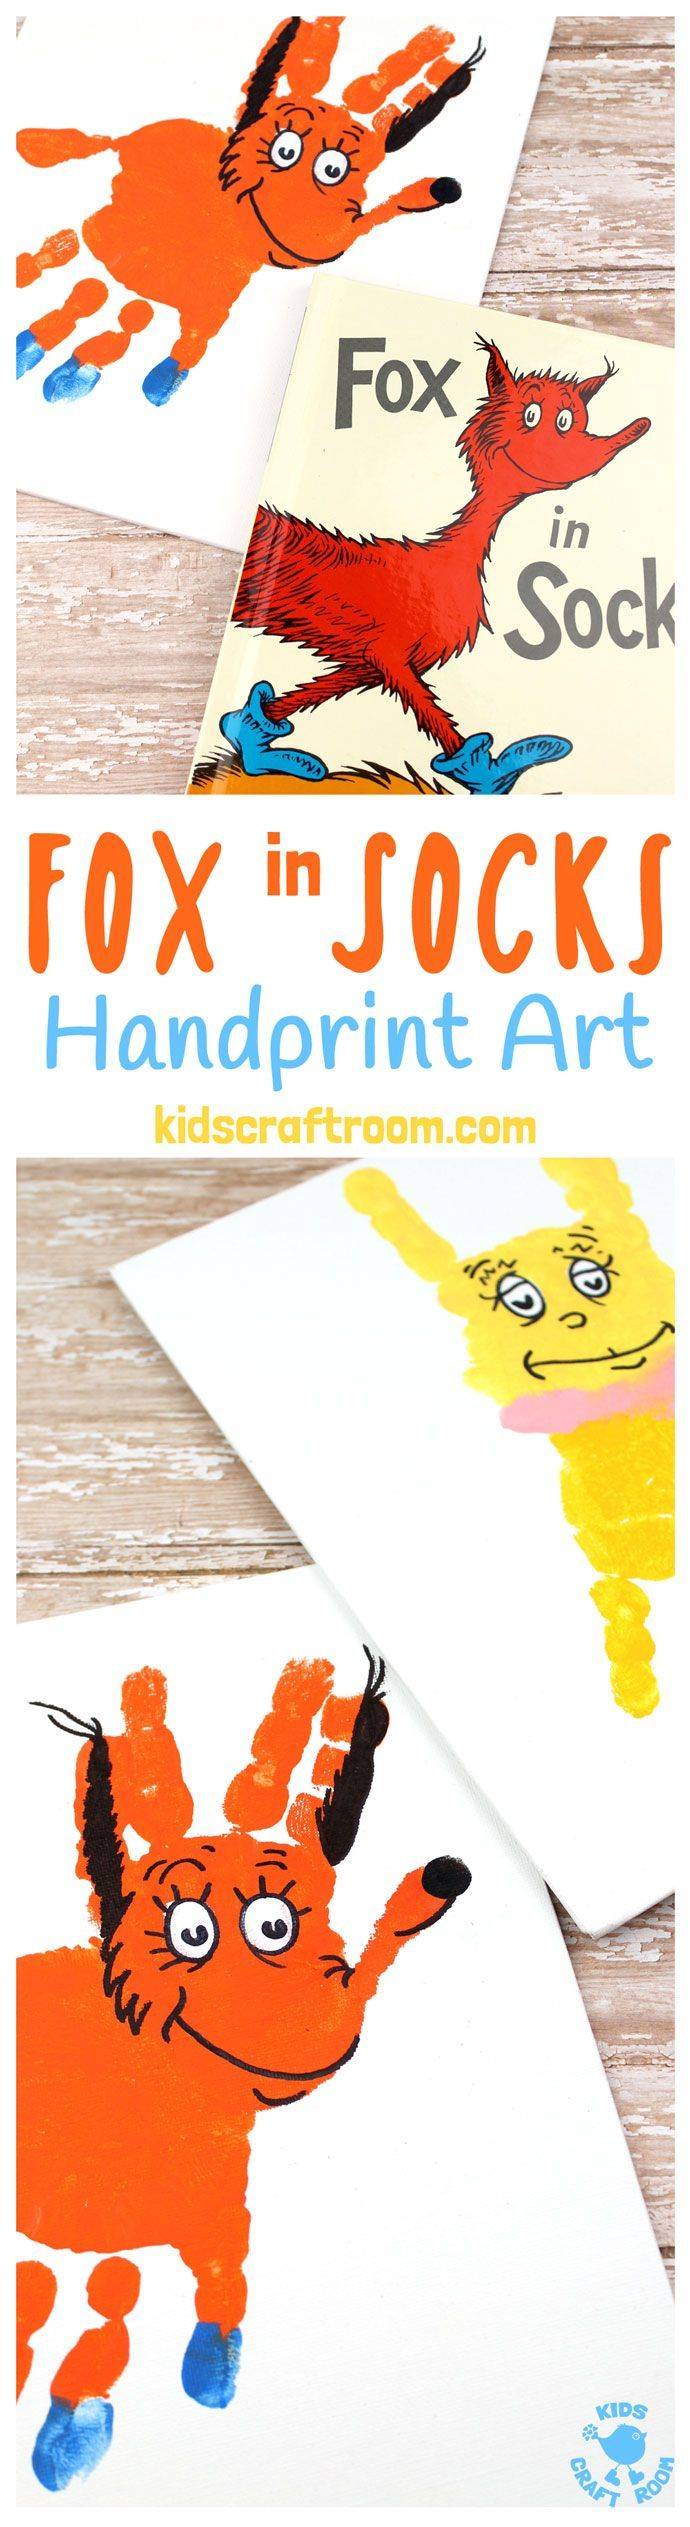 FOX IN SOCKS HANDPRINT CRAFT - Decorate your bedroom, classroom or reading nook with this super fun handprint art. Make the terrific tongue twister master, Fox In Socks and the tongue tied Knox! Both are easy to make and adorable. A great way to celebrate World Book Day and Dr Seuss' birthday